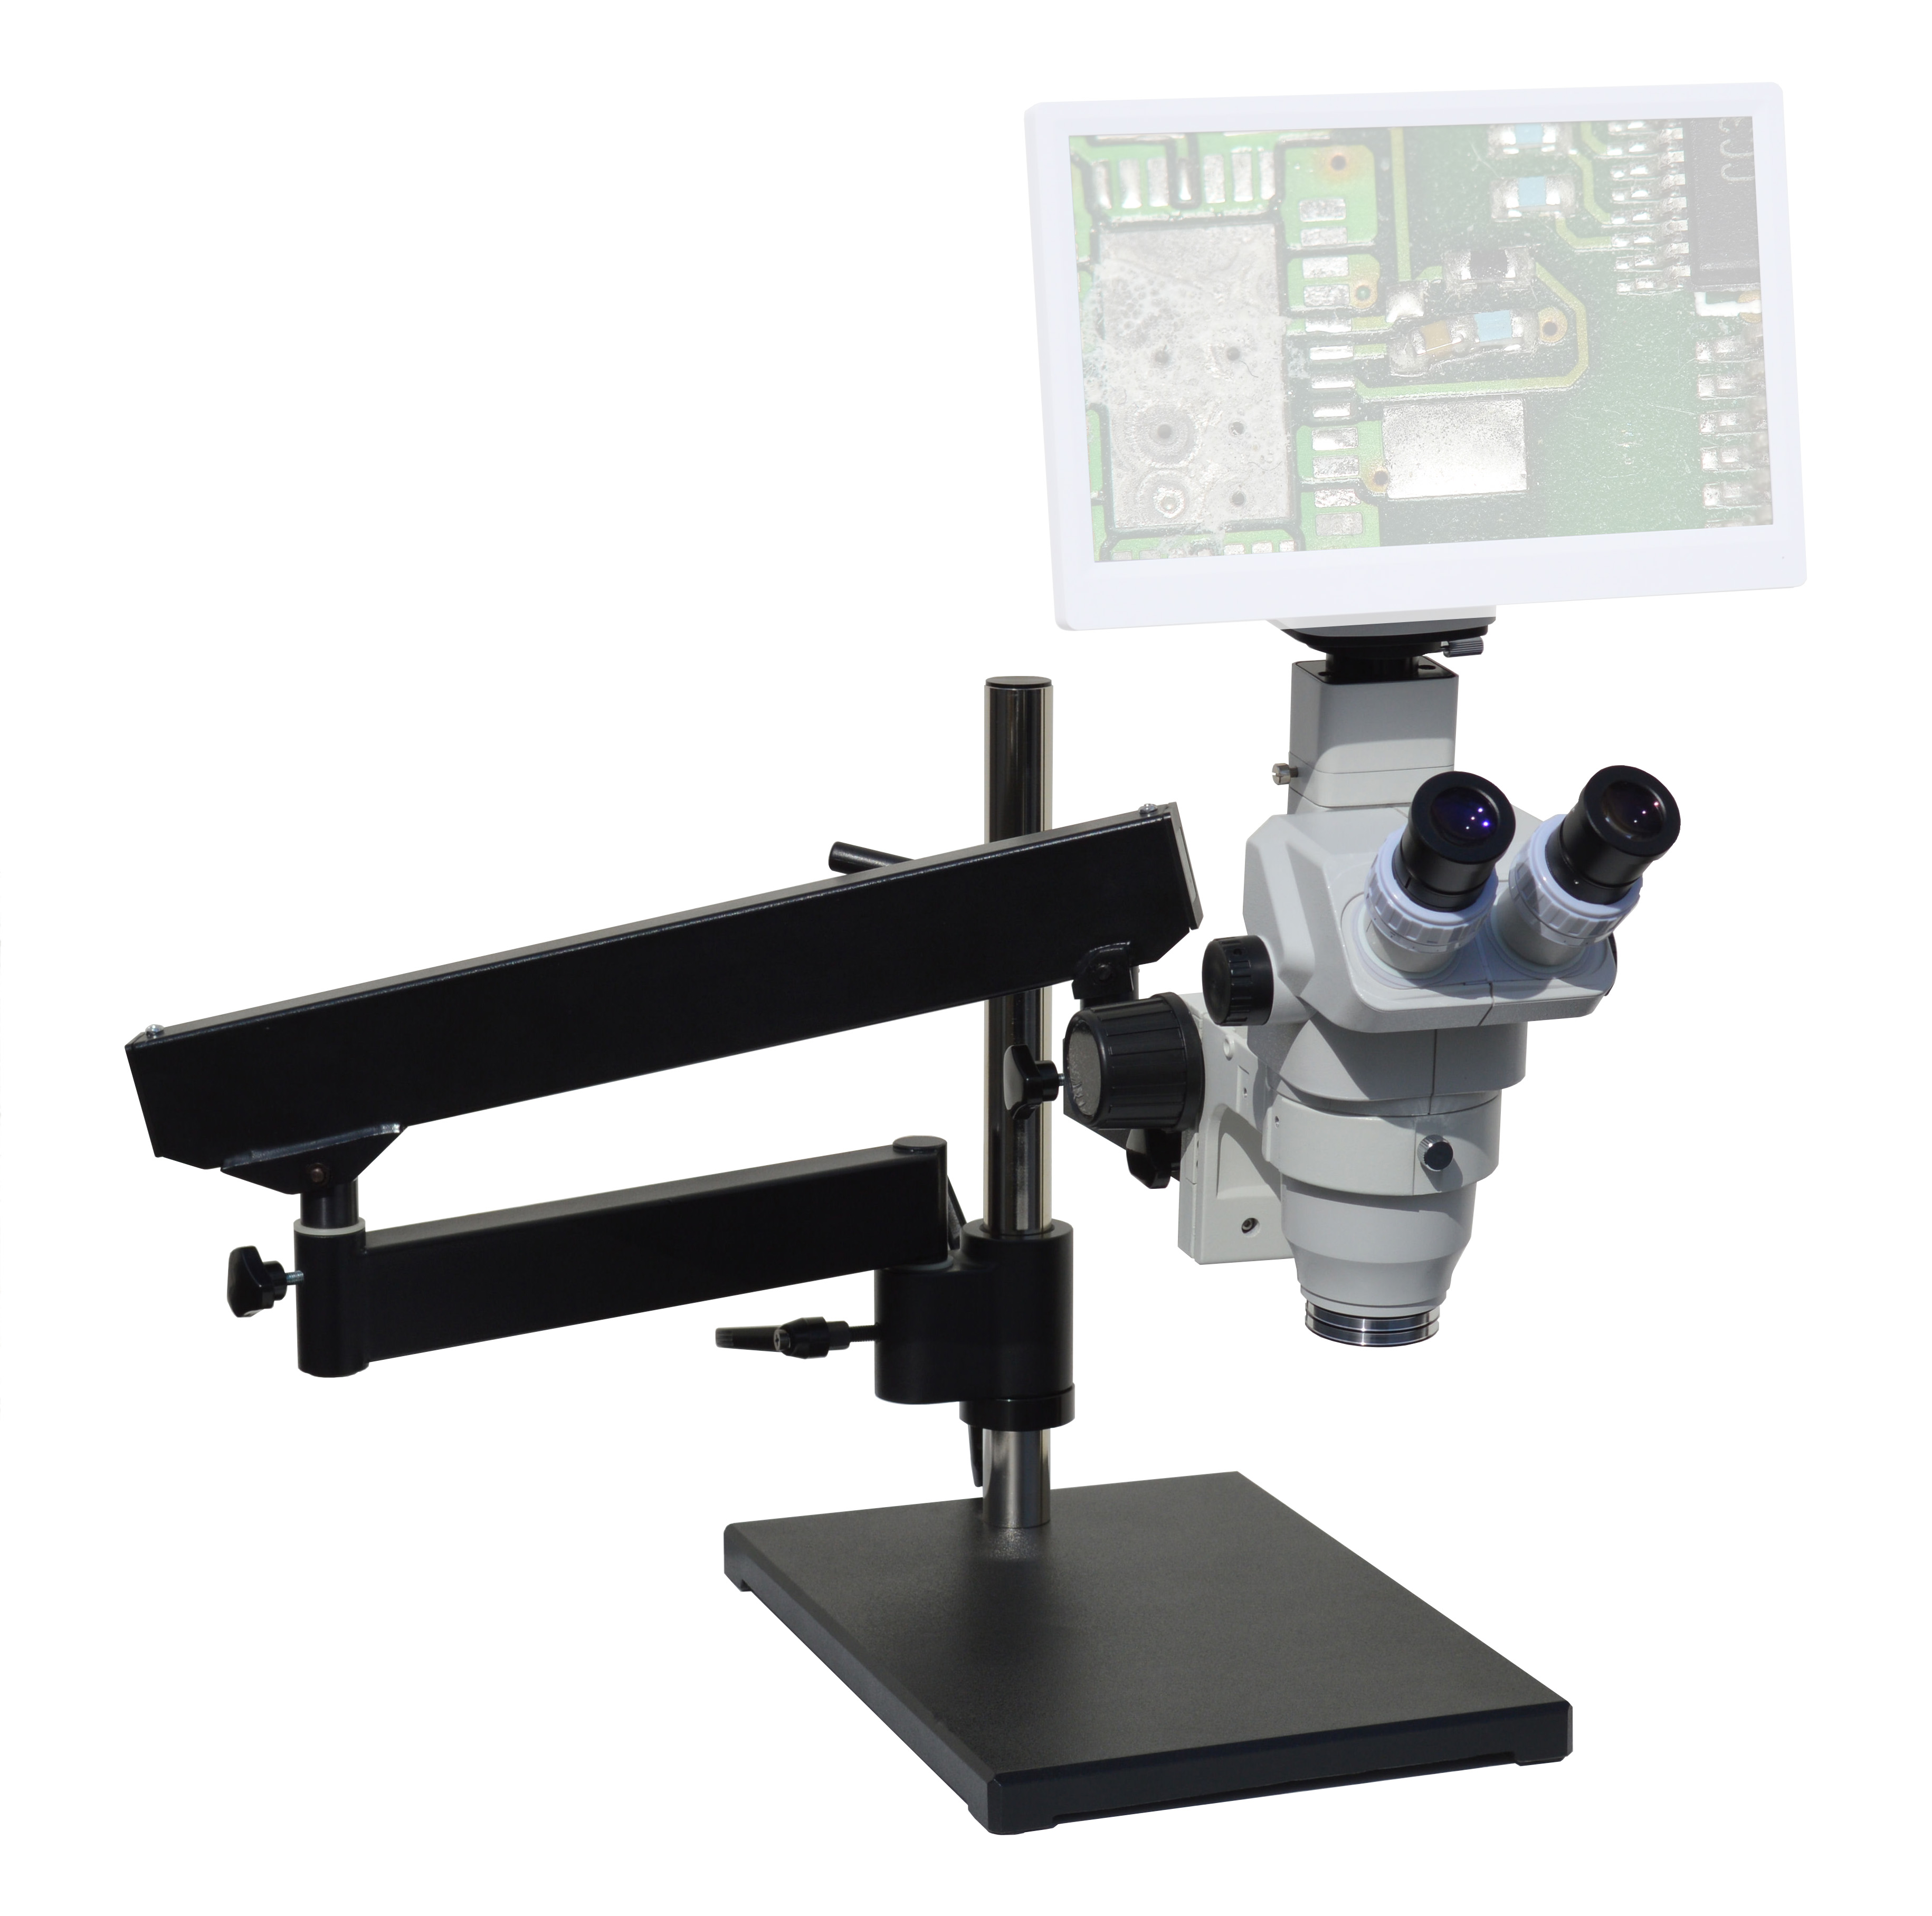 eTR100 Trinocular Digital Microscope series 2x-270x or Video Mag 3x-828x [Starting at $973]